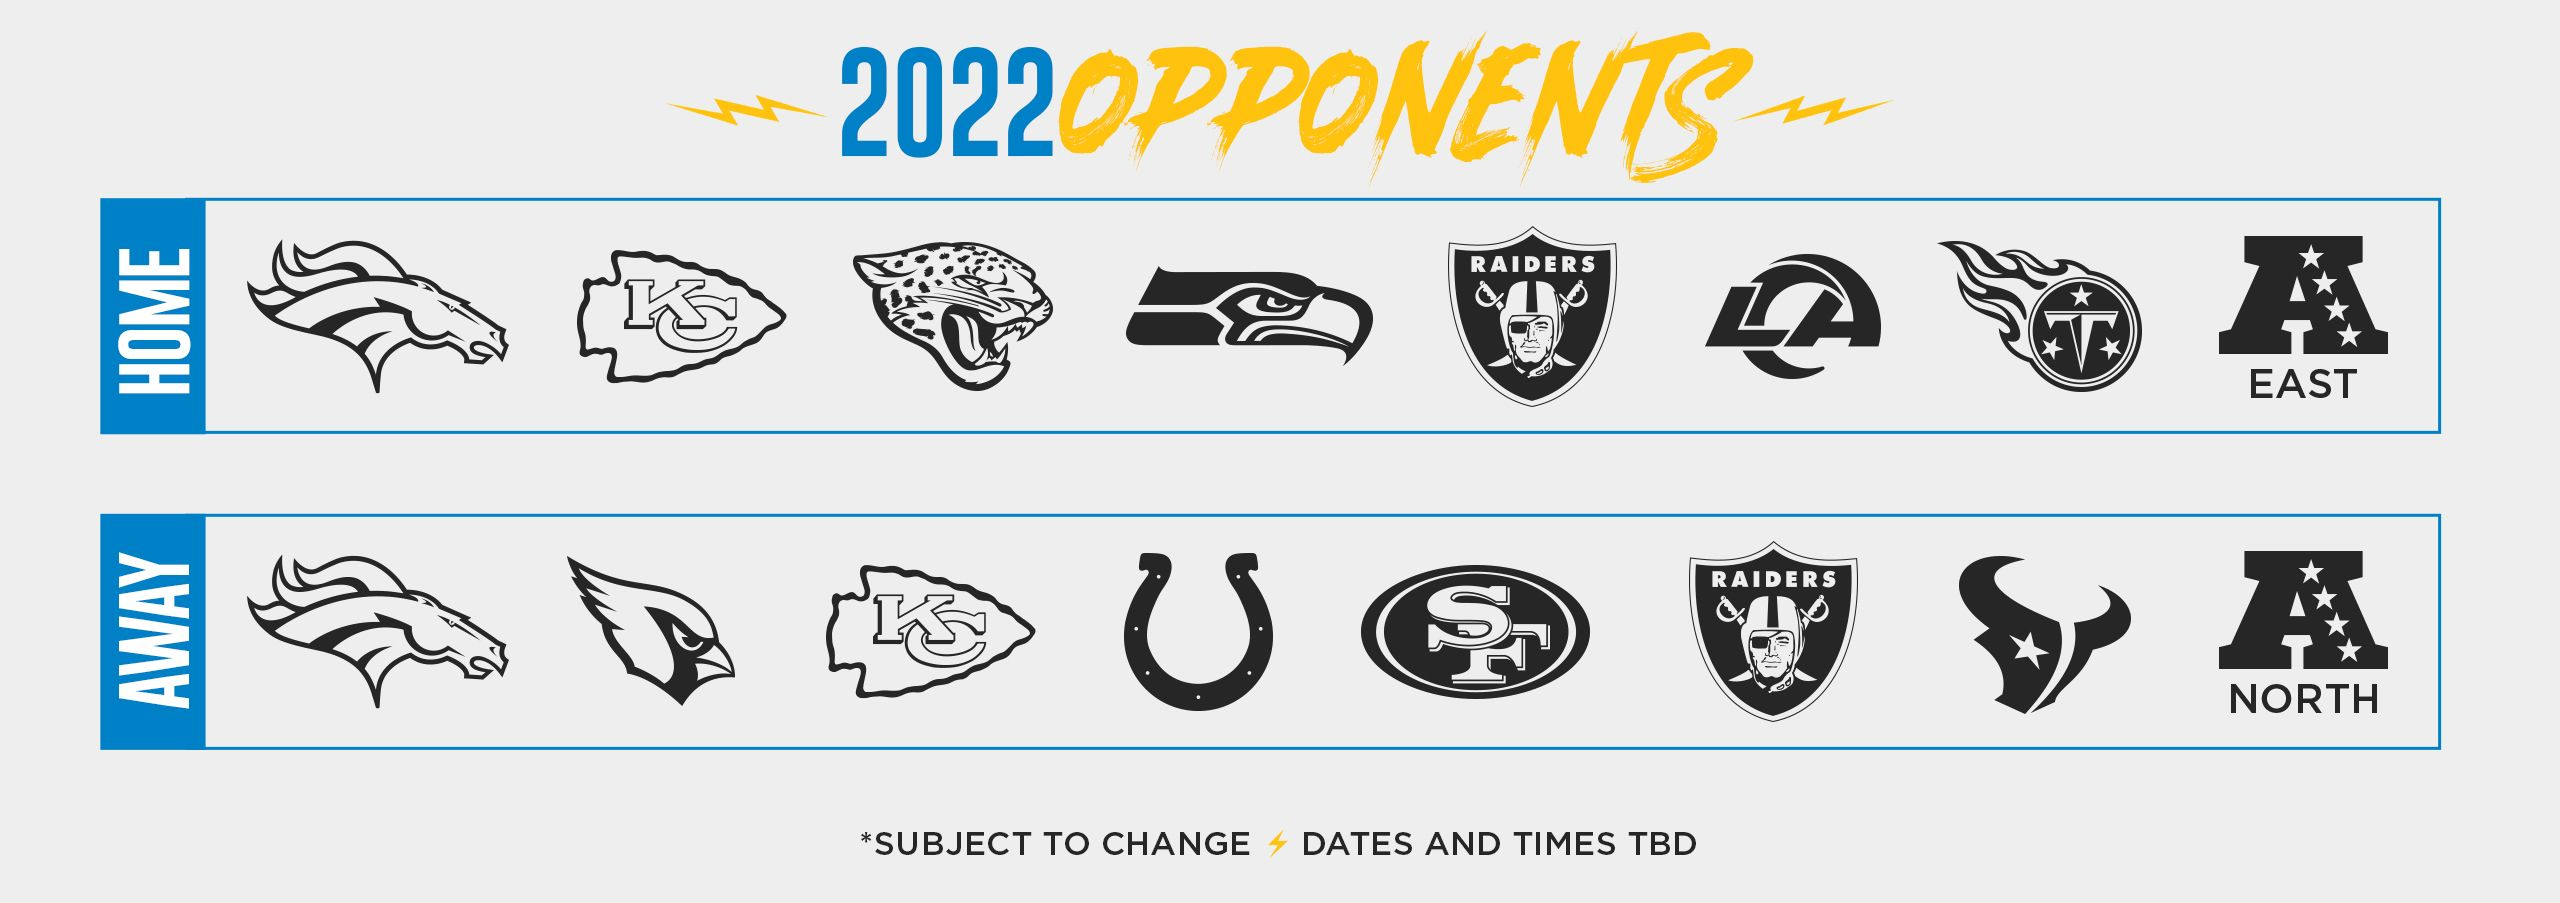 Calendrier Nfl 2022 2023 Chargers Future Opponents | Los Angeles Chargers   chargers.com